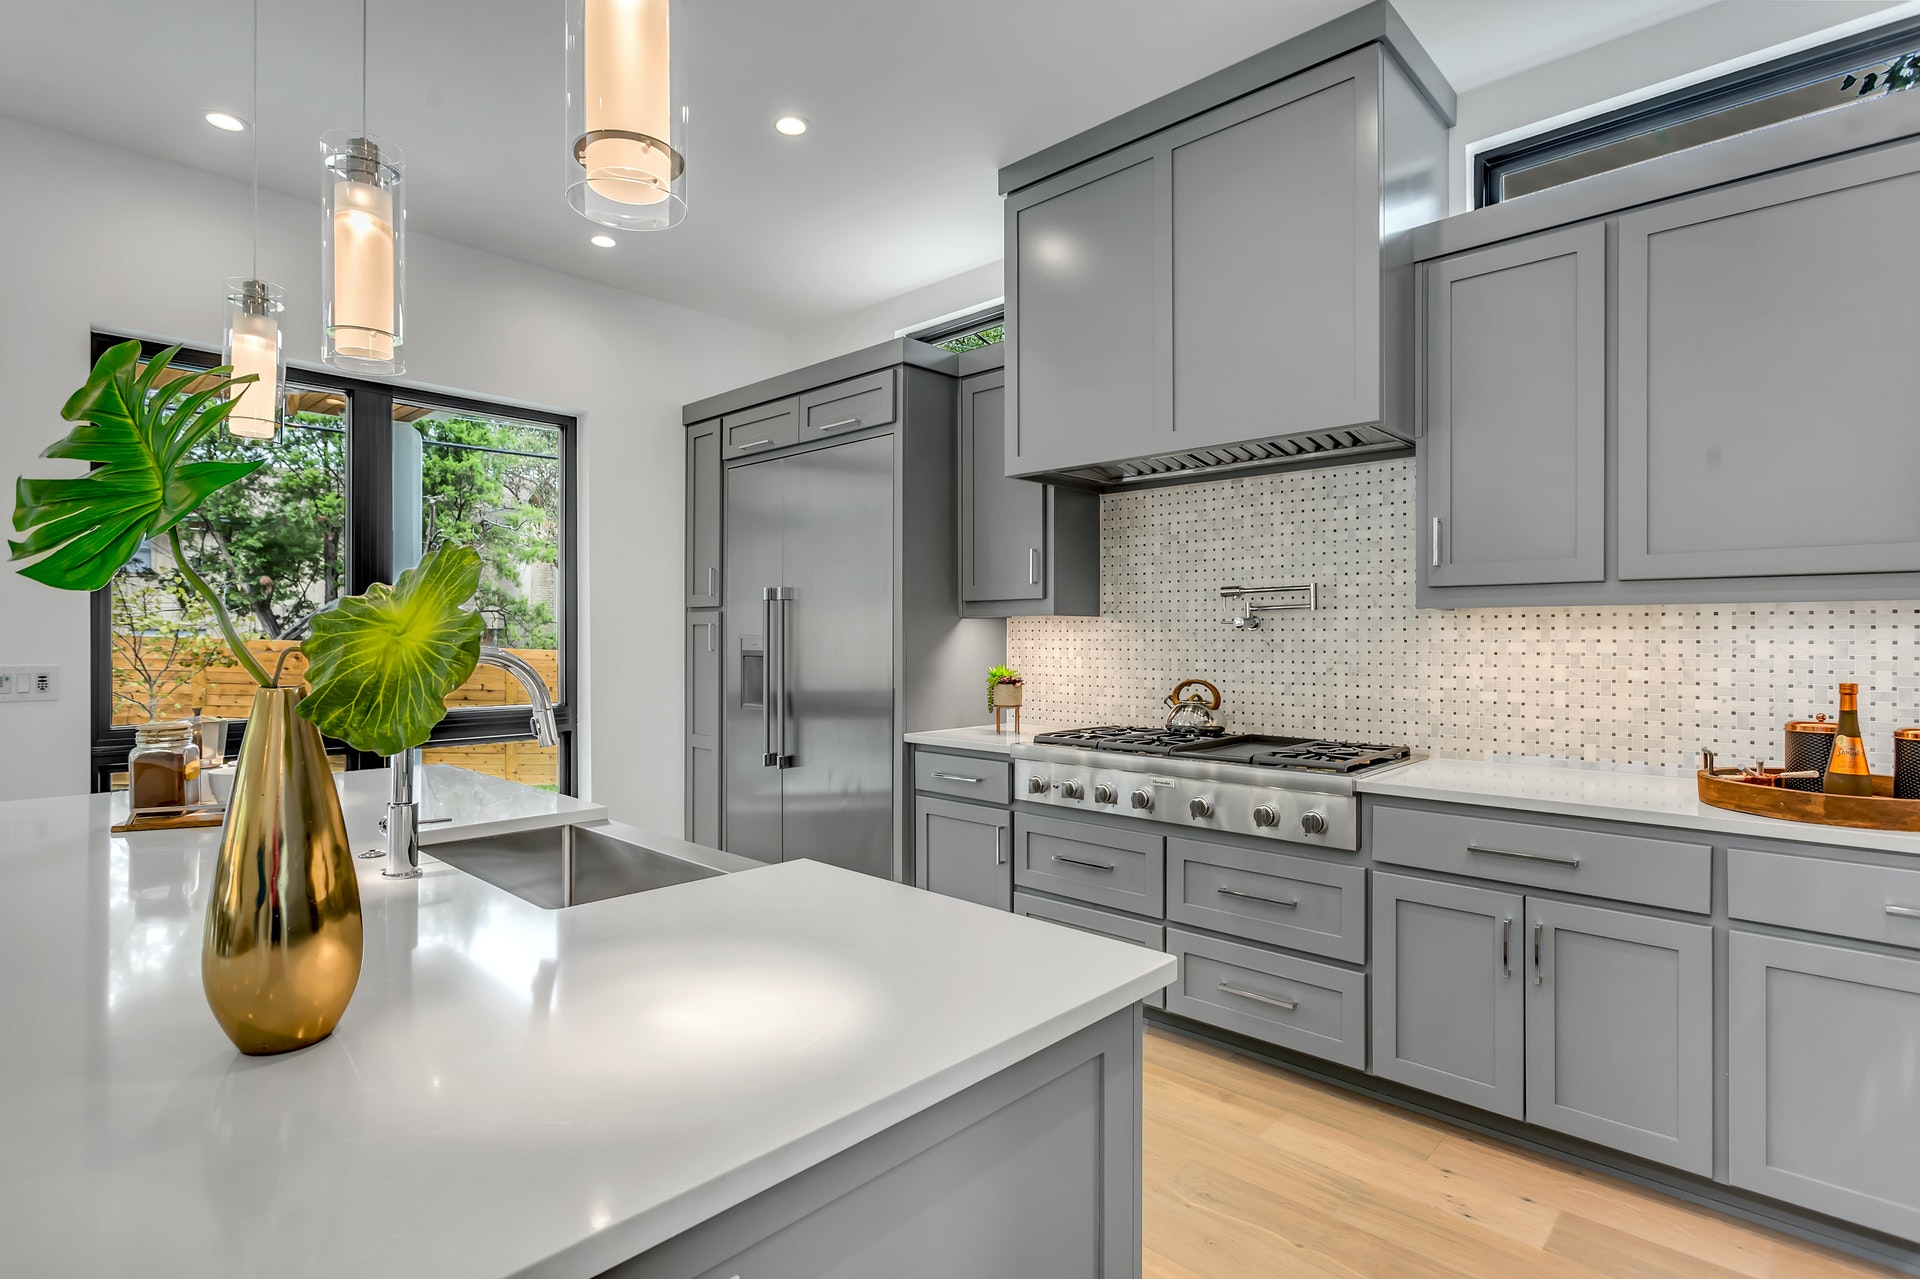 Best kitchen cabinets in Calgary